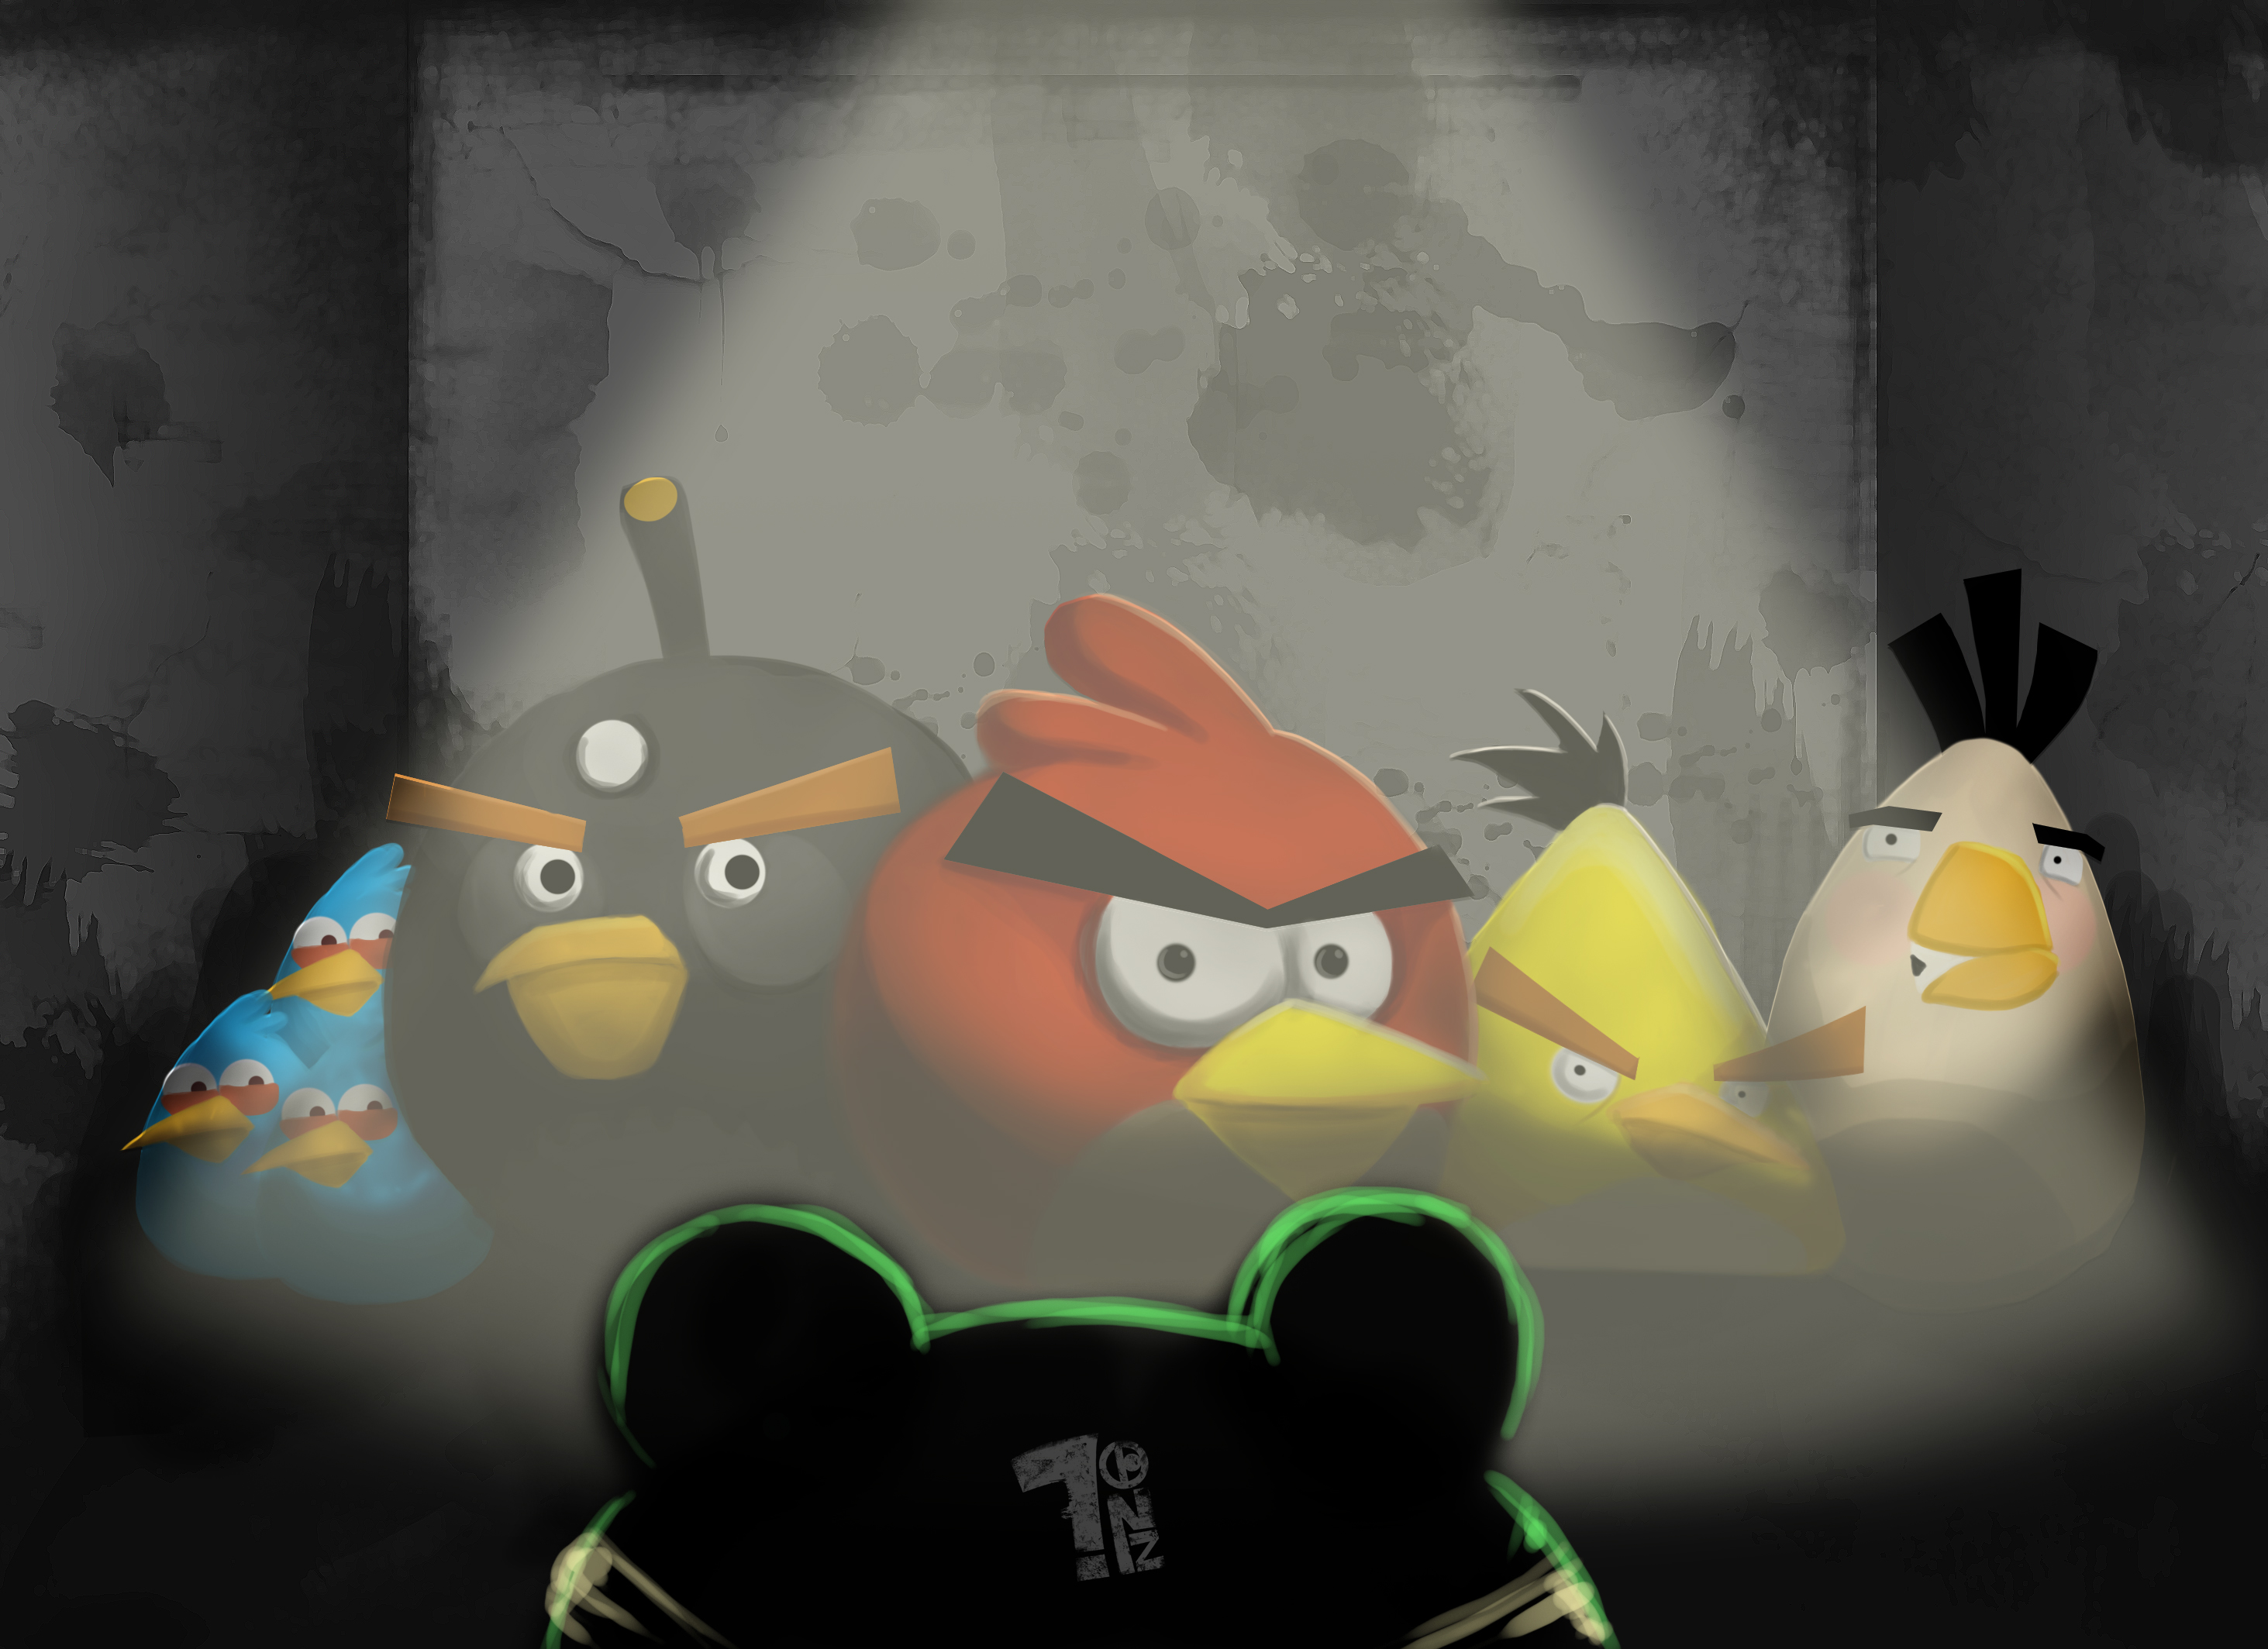 Free Download Angry Birds Wallpaper 6 Pctechnotes Pc Tips Tricks And Tweaks 2926x2128 For Your Desktop Mobile Tablet Explore 49 Angry Bird Wallpaper For Desktop Birds Wallpaper Free Download